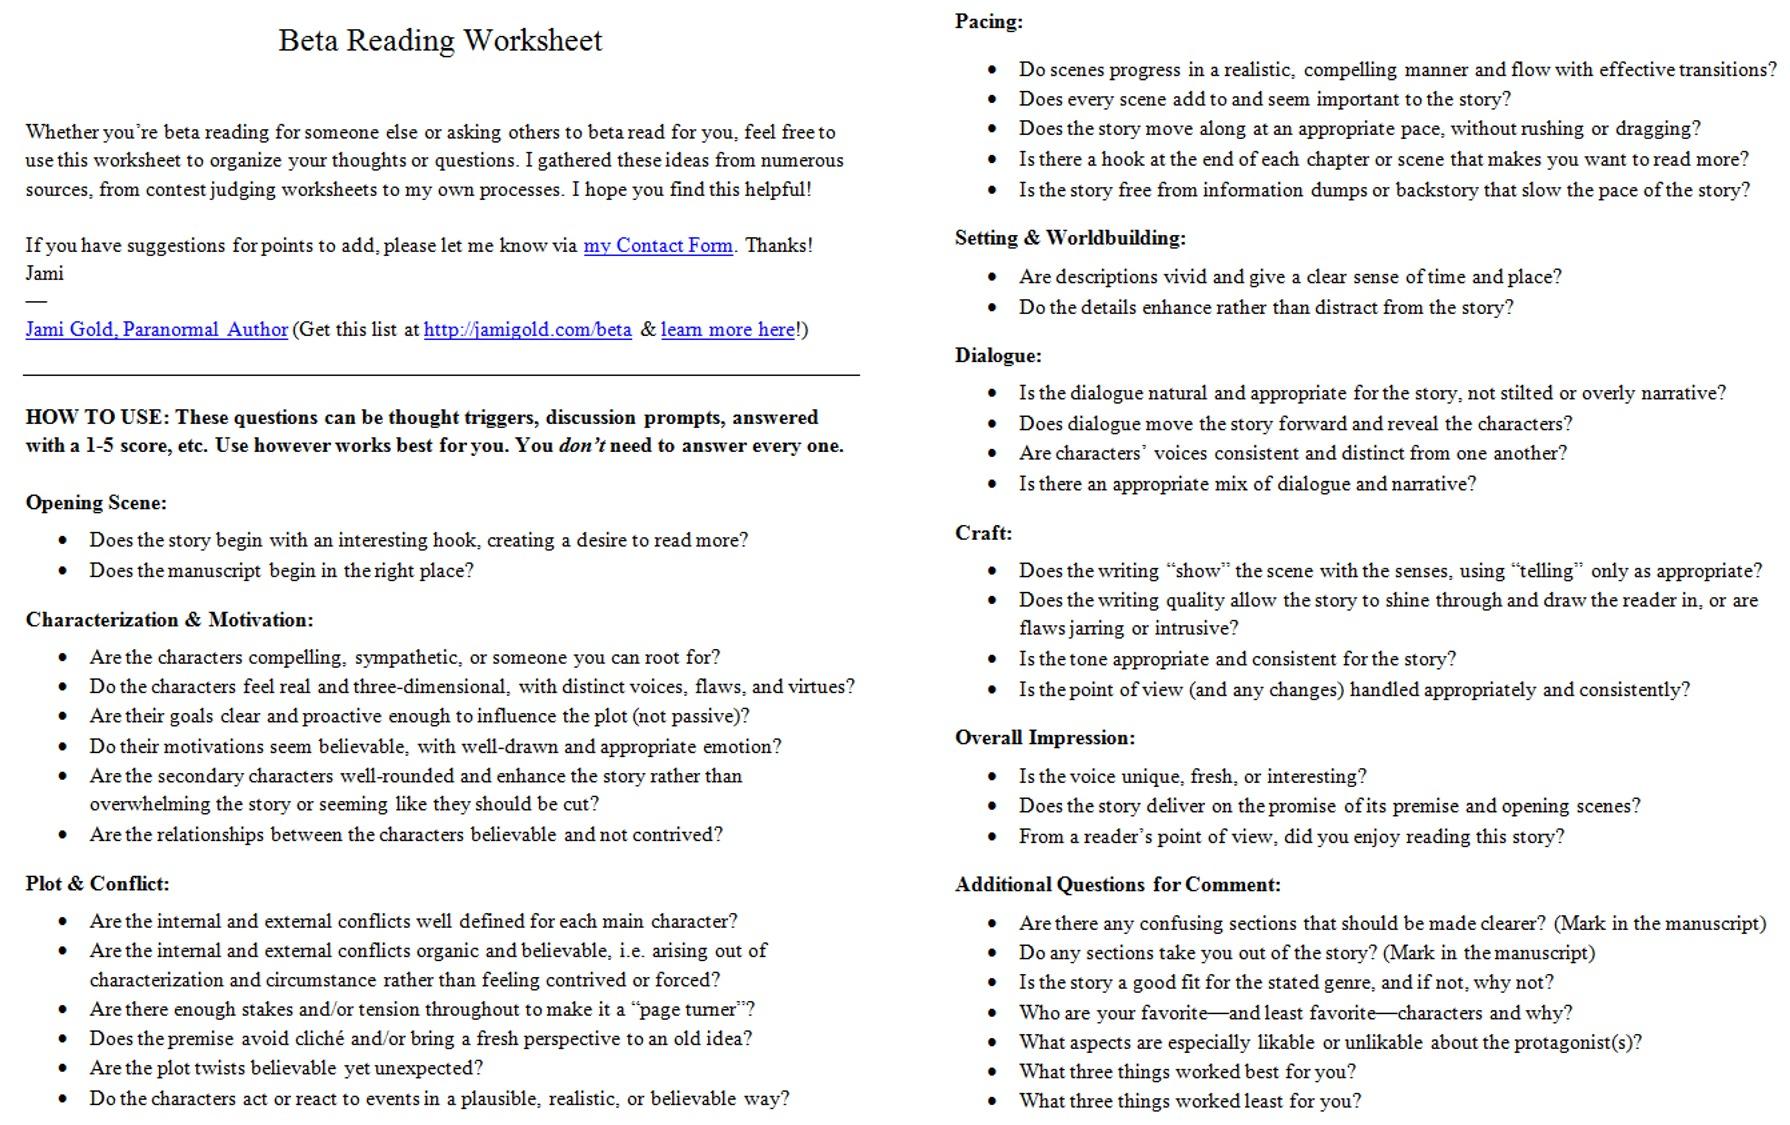 Weirdmailus  Mesmerizing Worksheets For Writers  Jami Gold Paranormal Author With Fetching Screen Shot Of The Twopage Beta Reading Worksheet With Breathtaking Ser Worksheets Also Comparing And Ordering Decimals Worksheets Th Grade In Addition Comparison Of Mitosis And Meiosis Worksheet And Word Problem Worksheets Th Grade As Well As Food Chain Food Web Worksheet Additionally Law Of Reflection Worksheet From Jamigoldcom With Weirdmailus  Fetching Worksheets For Writers  Jami Gold Paranormal Author With Breathtaking Screen Shot Of The Twopage Beta Reading Worksheet And Mesmerizing Ser Worksheets Also Comparing And Ordering Decimals Worksheets Th Grade In Addition Comparison Of Mitosis And Meiosis Worksheet From Jamigoldcom